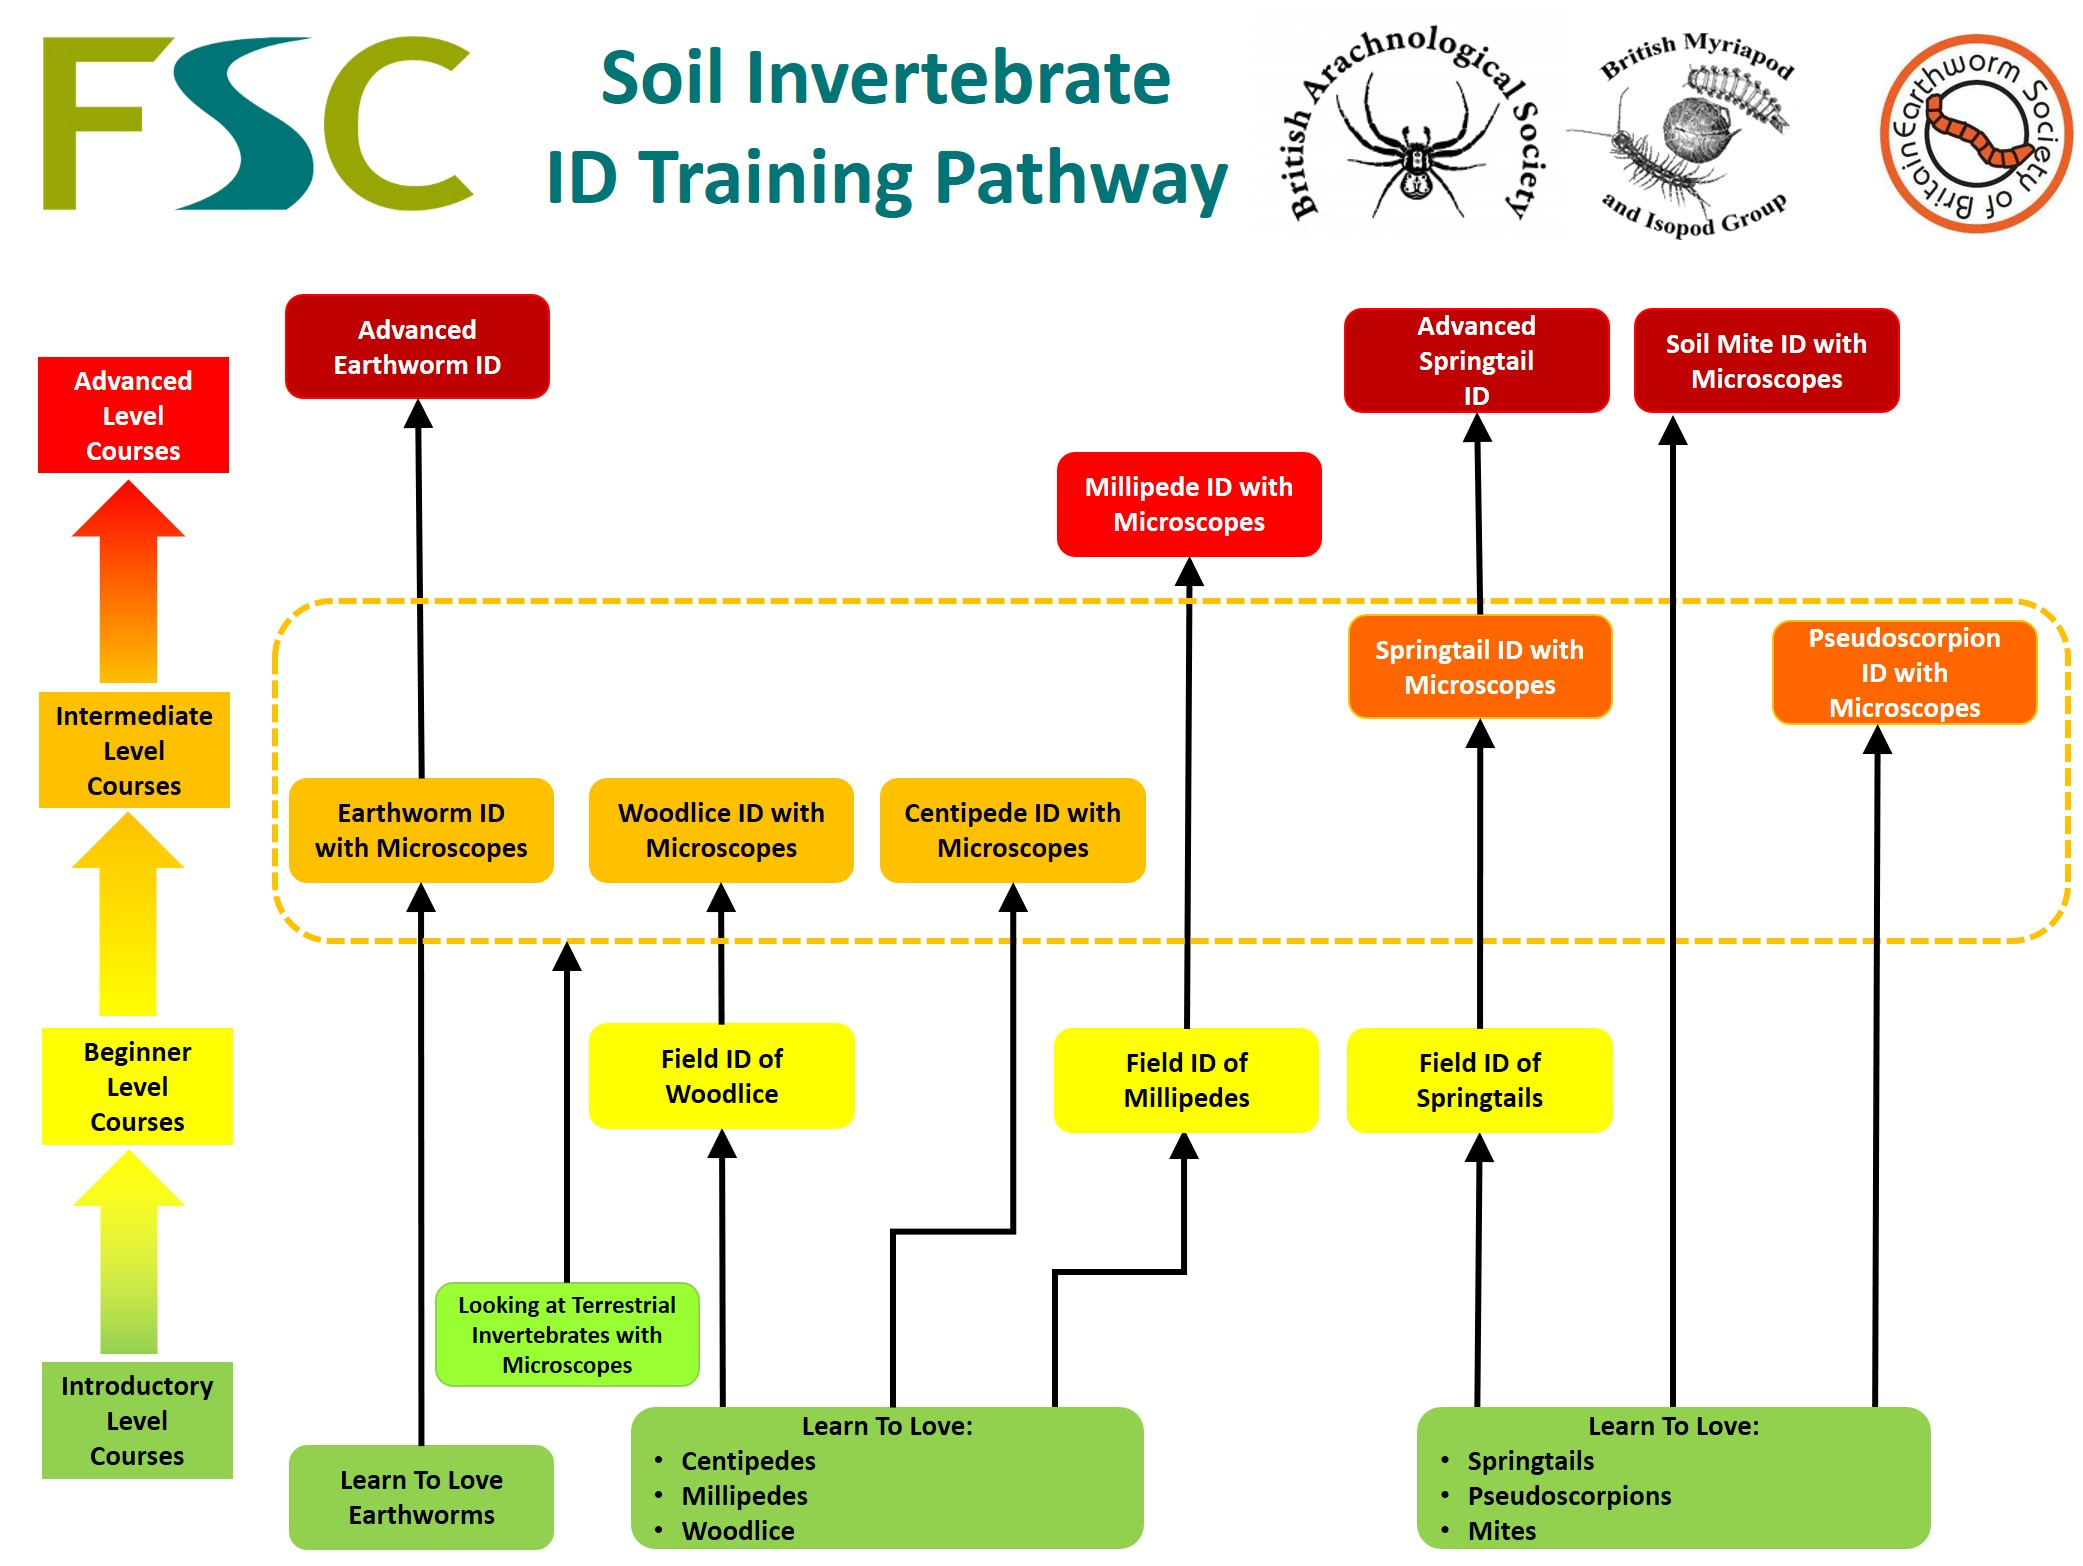 Soil Invertebrate ID Training Pathway